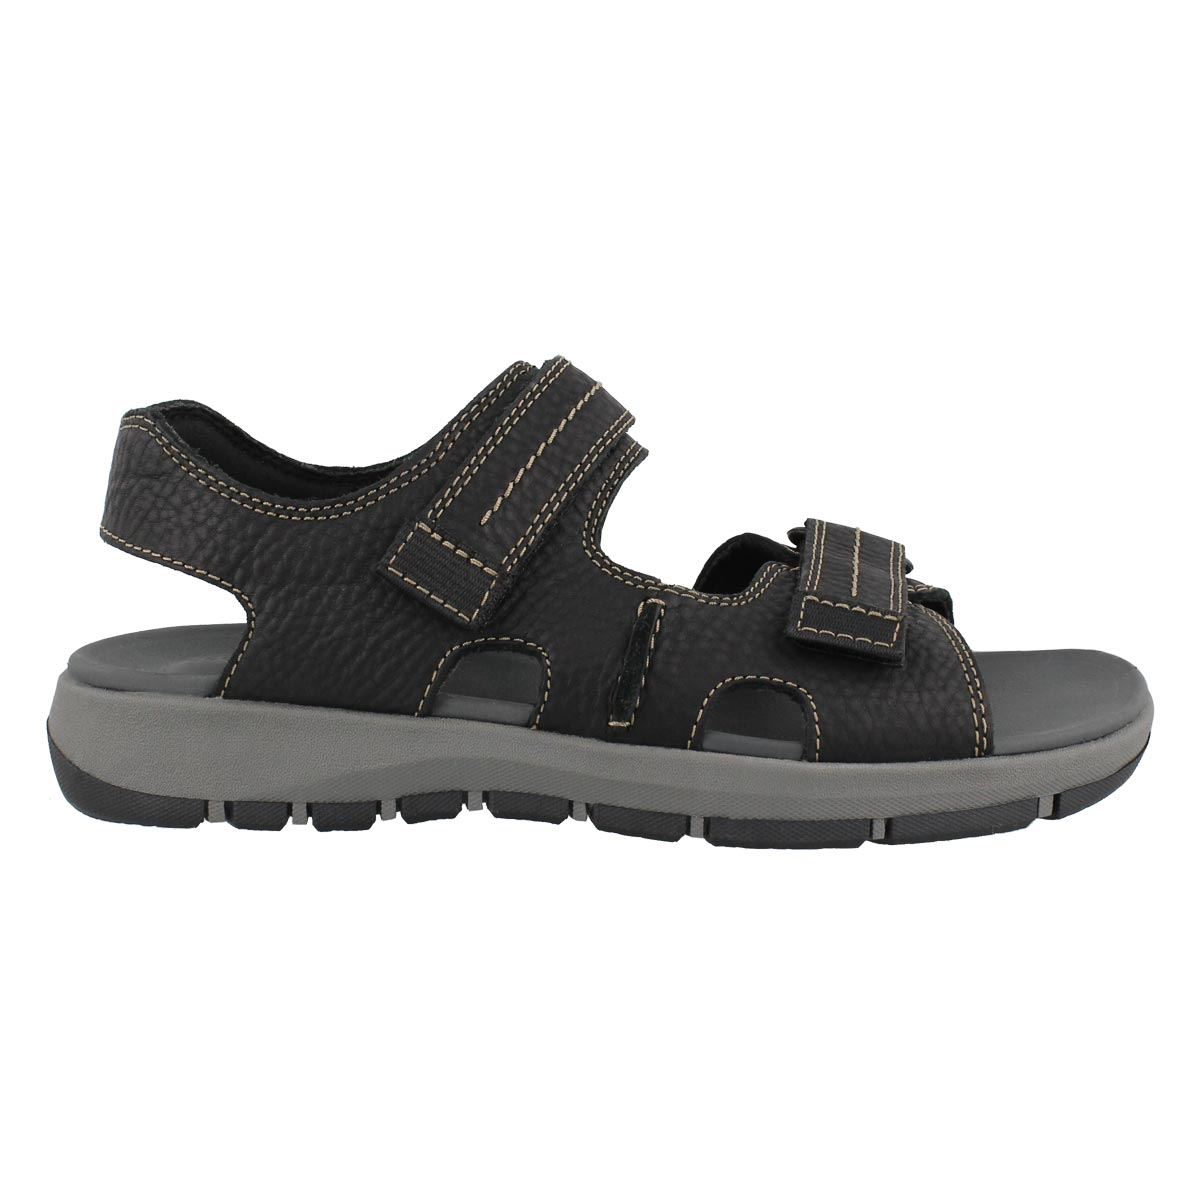 Mns Brixby Shore black casual sandal